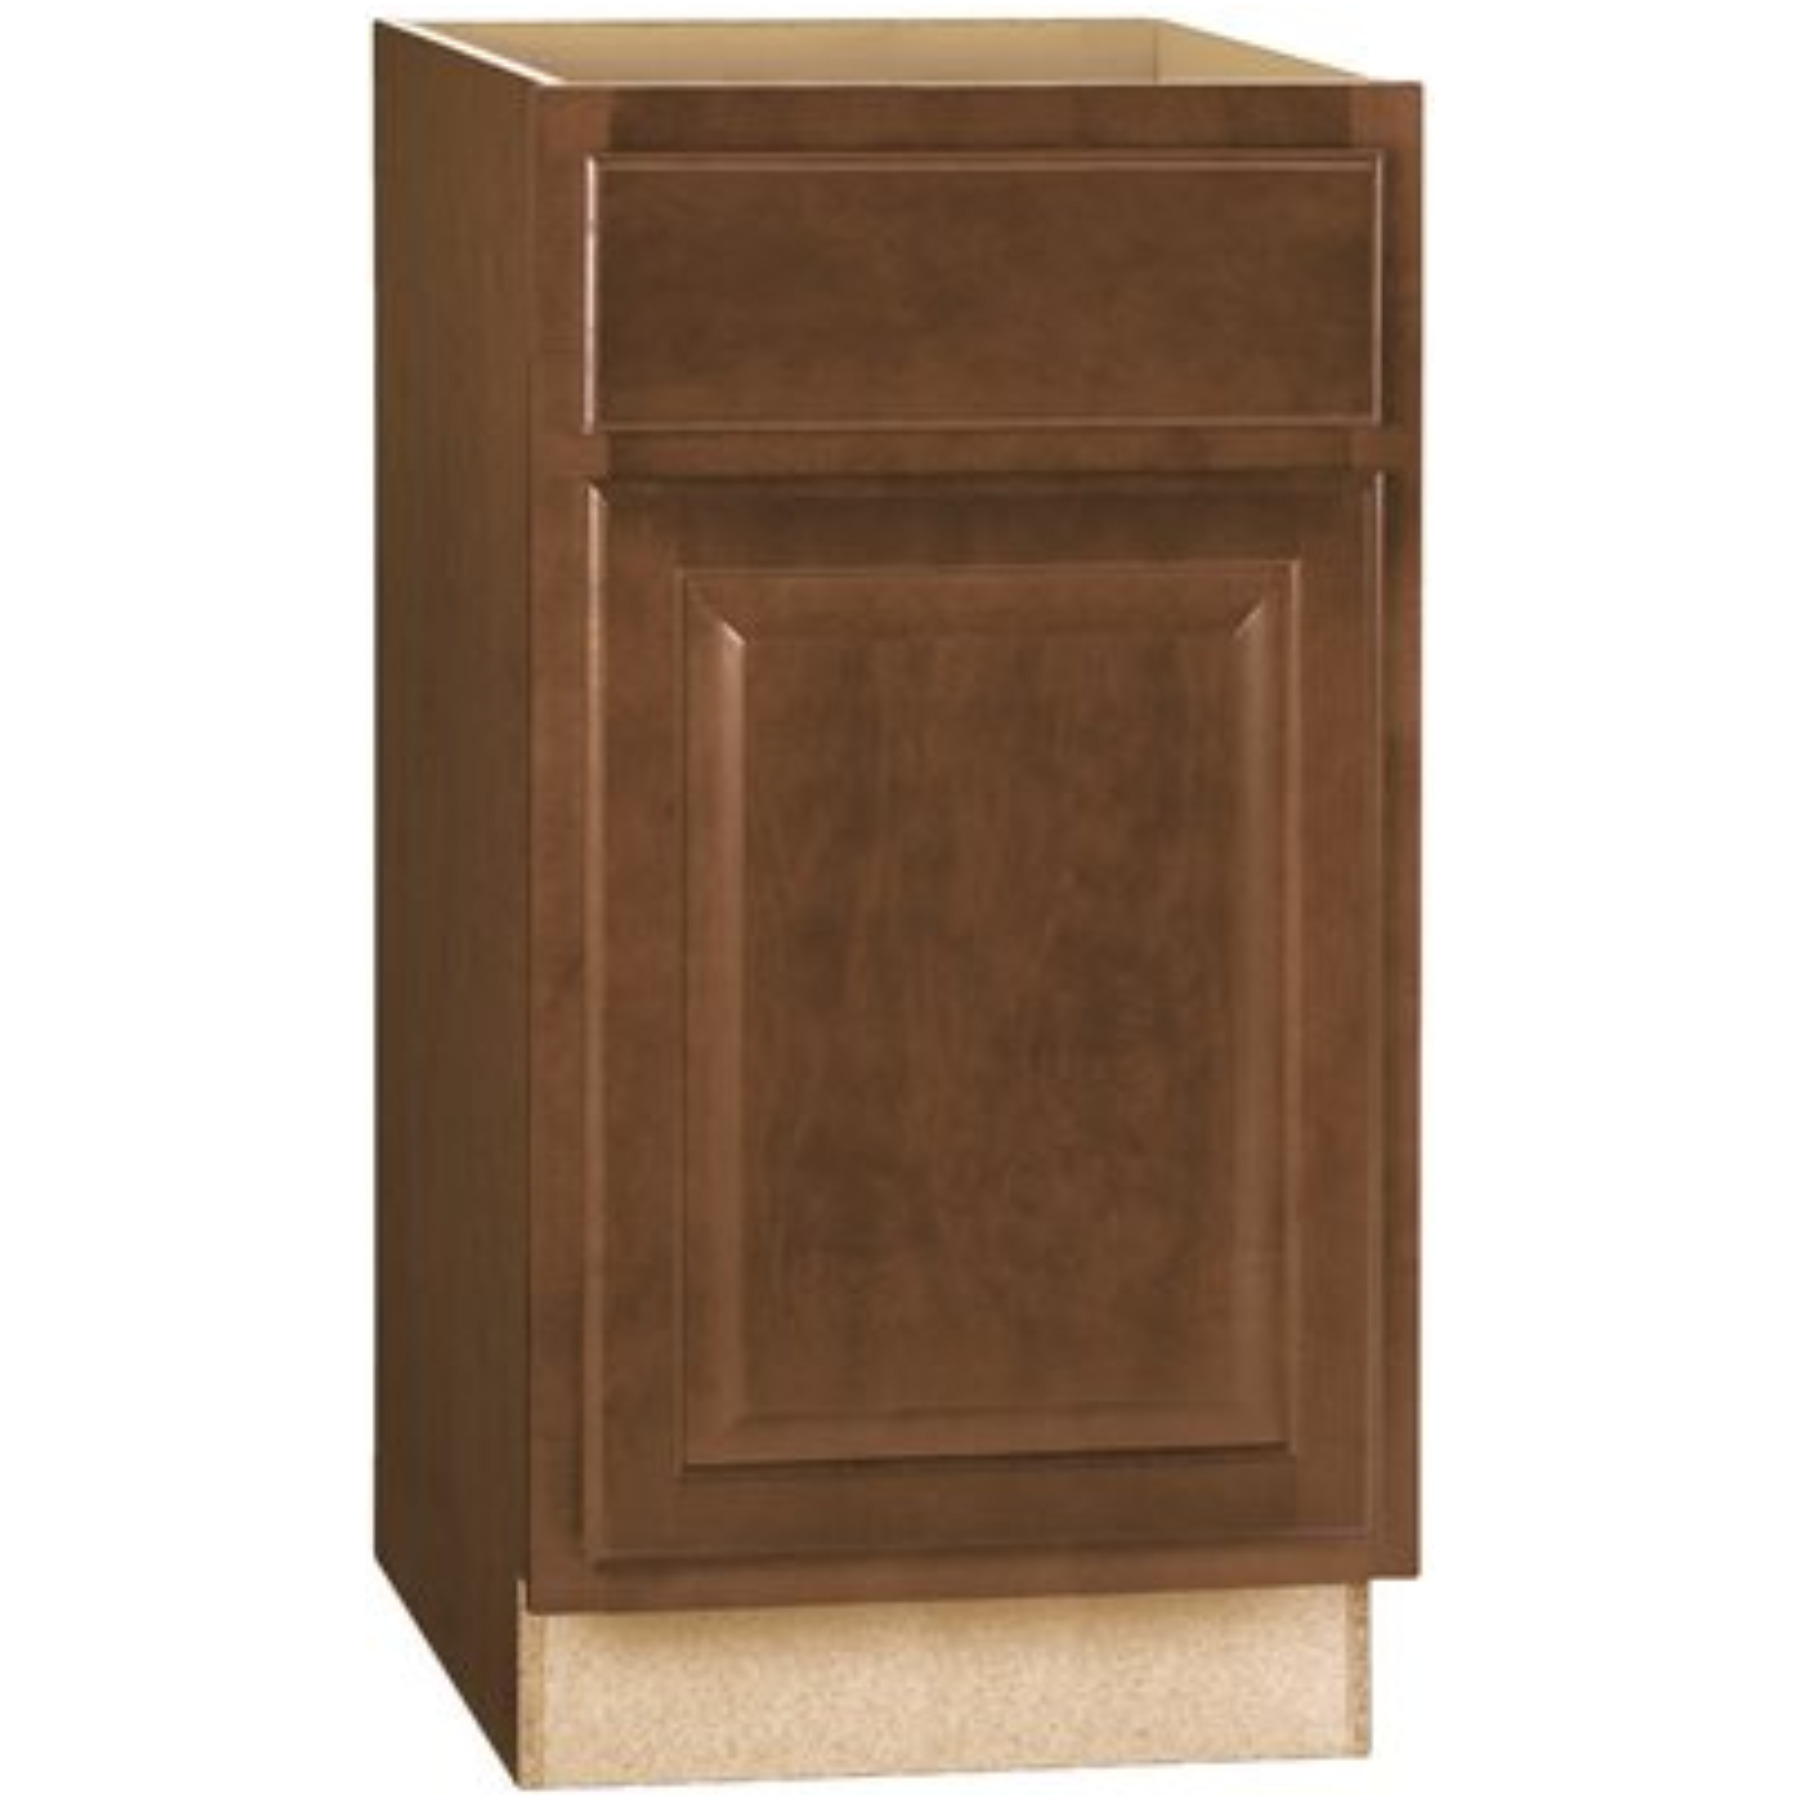 RSI HOME PRODUCTS HAMILTON BASE CABINET, FULLY ASSEMBLED, RAISED PANEL, CAFE, 18X34-1/2X24 IN.